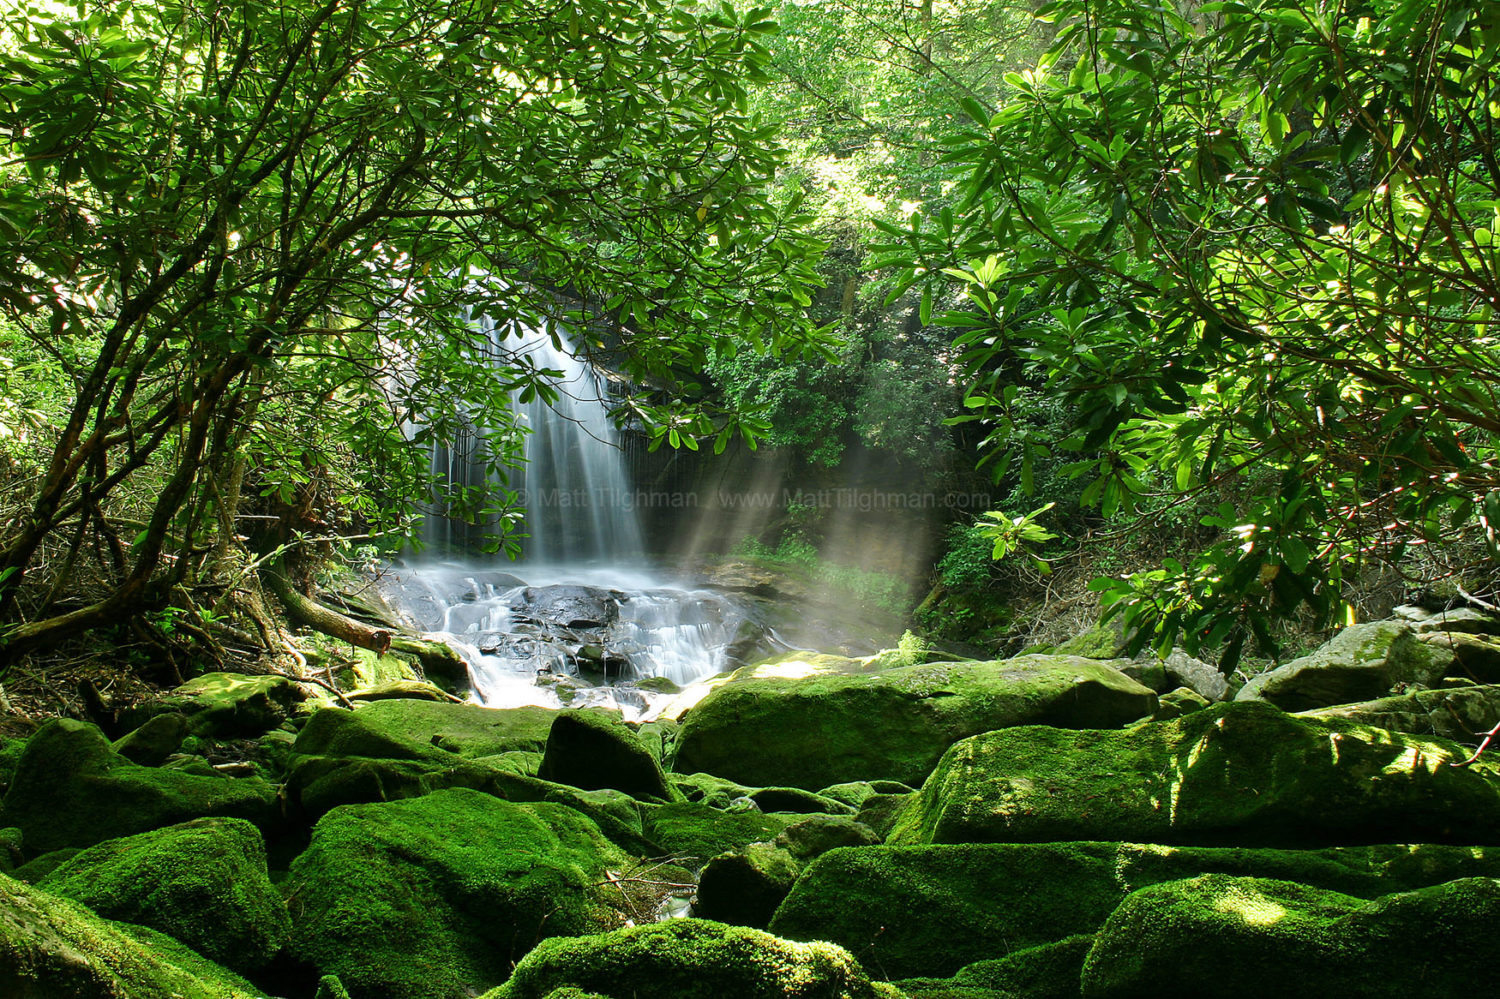 Fine art stock photograph of Charlie Falls, in North Carolina, from within Rhododendron forest. From this vantage, the large cascade takes on the appearance of a hidden waterfall awaiting discovery.